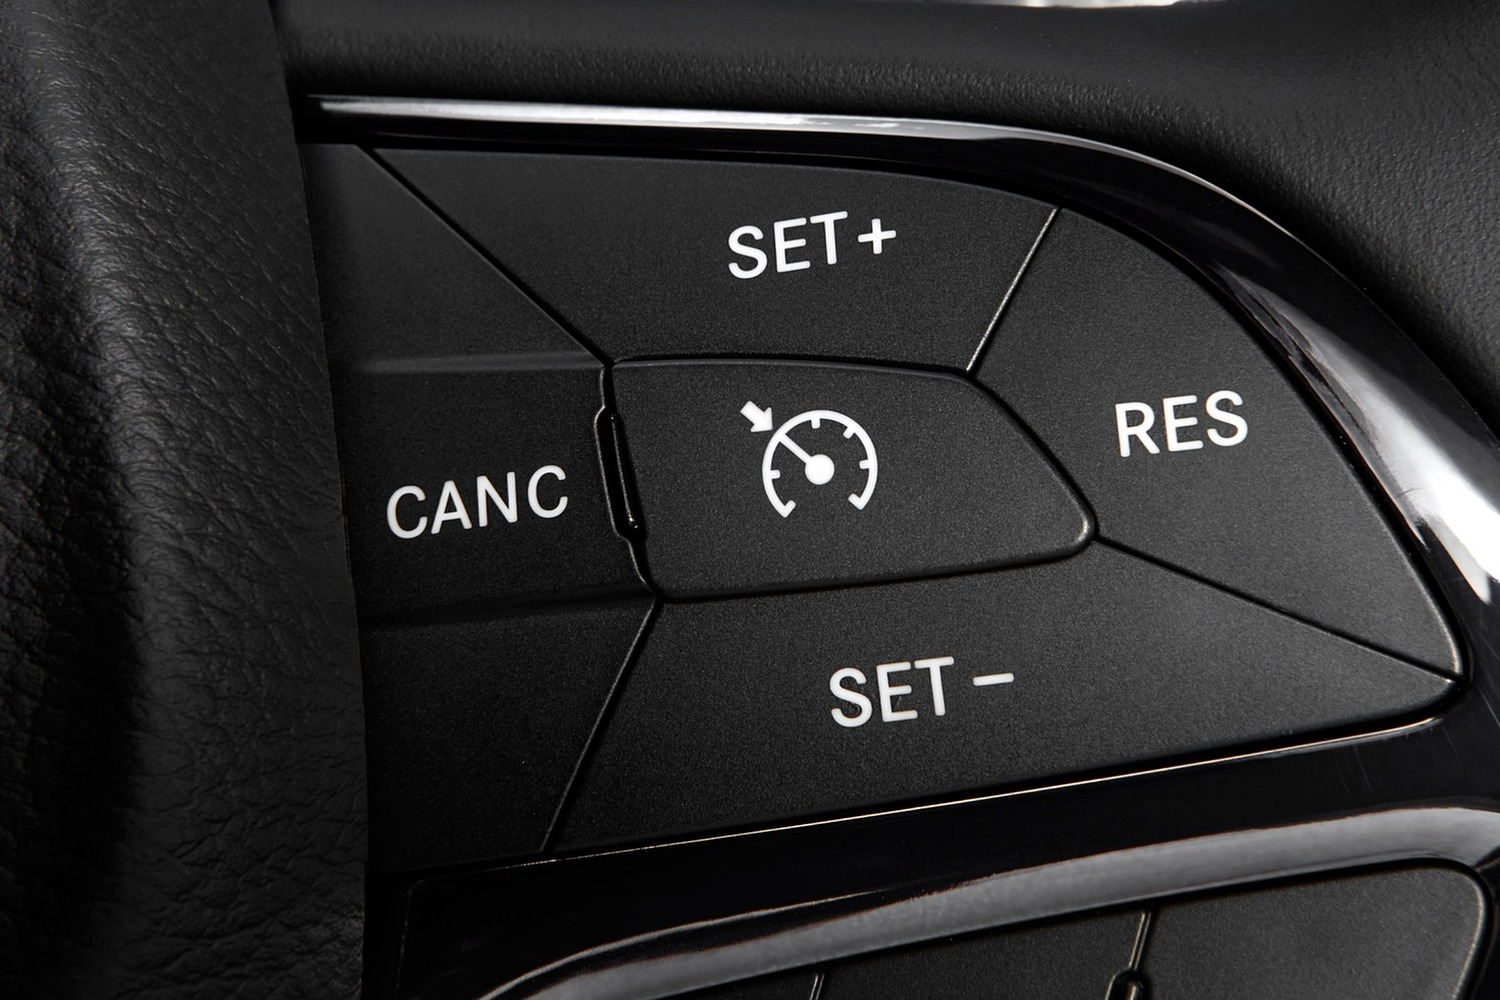 2016 Chrysler 200 S Sedan Steering Wheel Detail